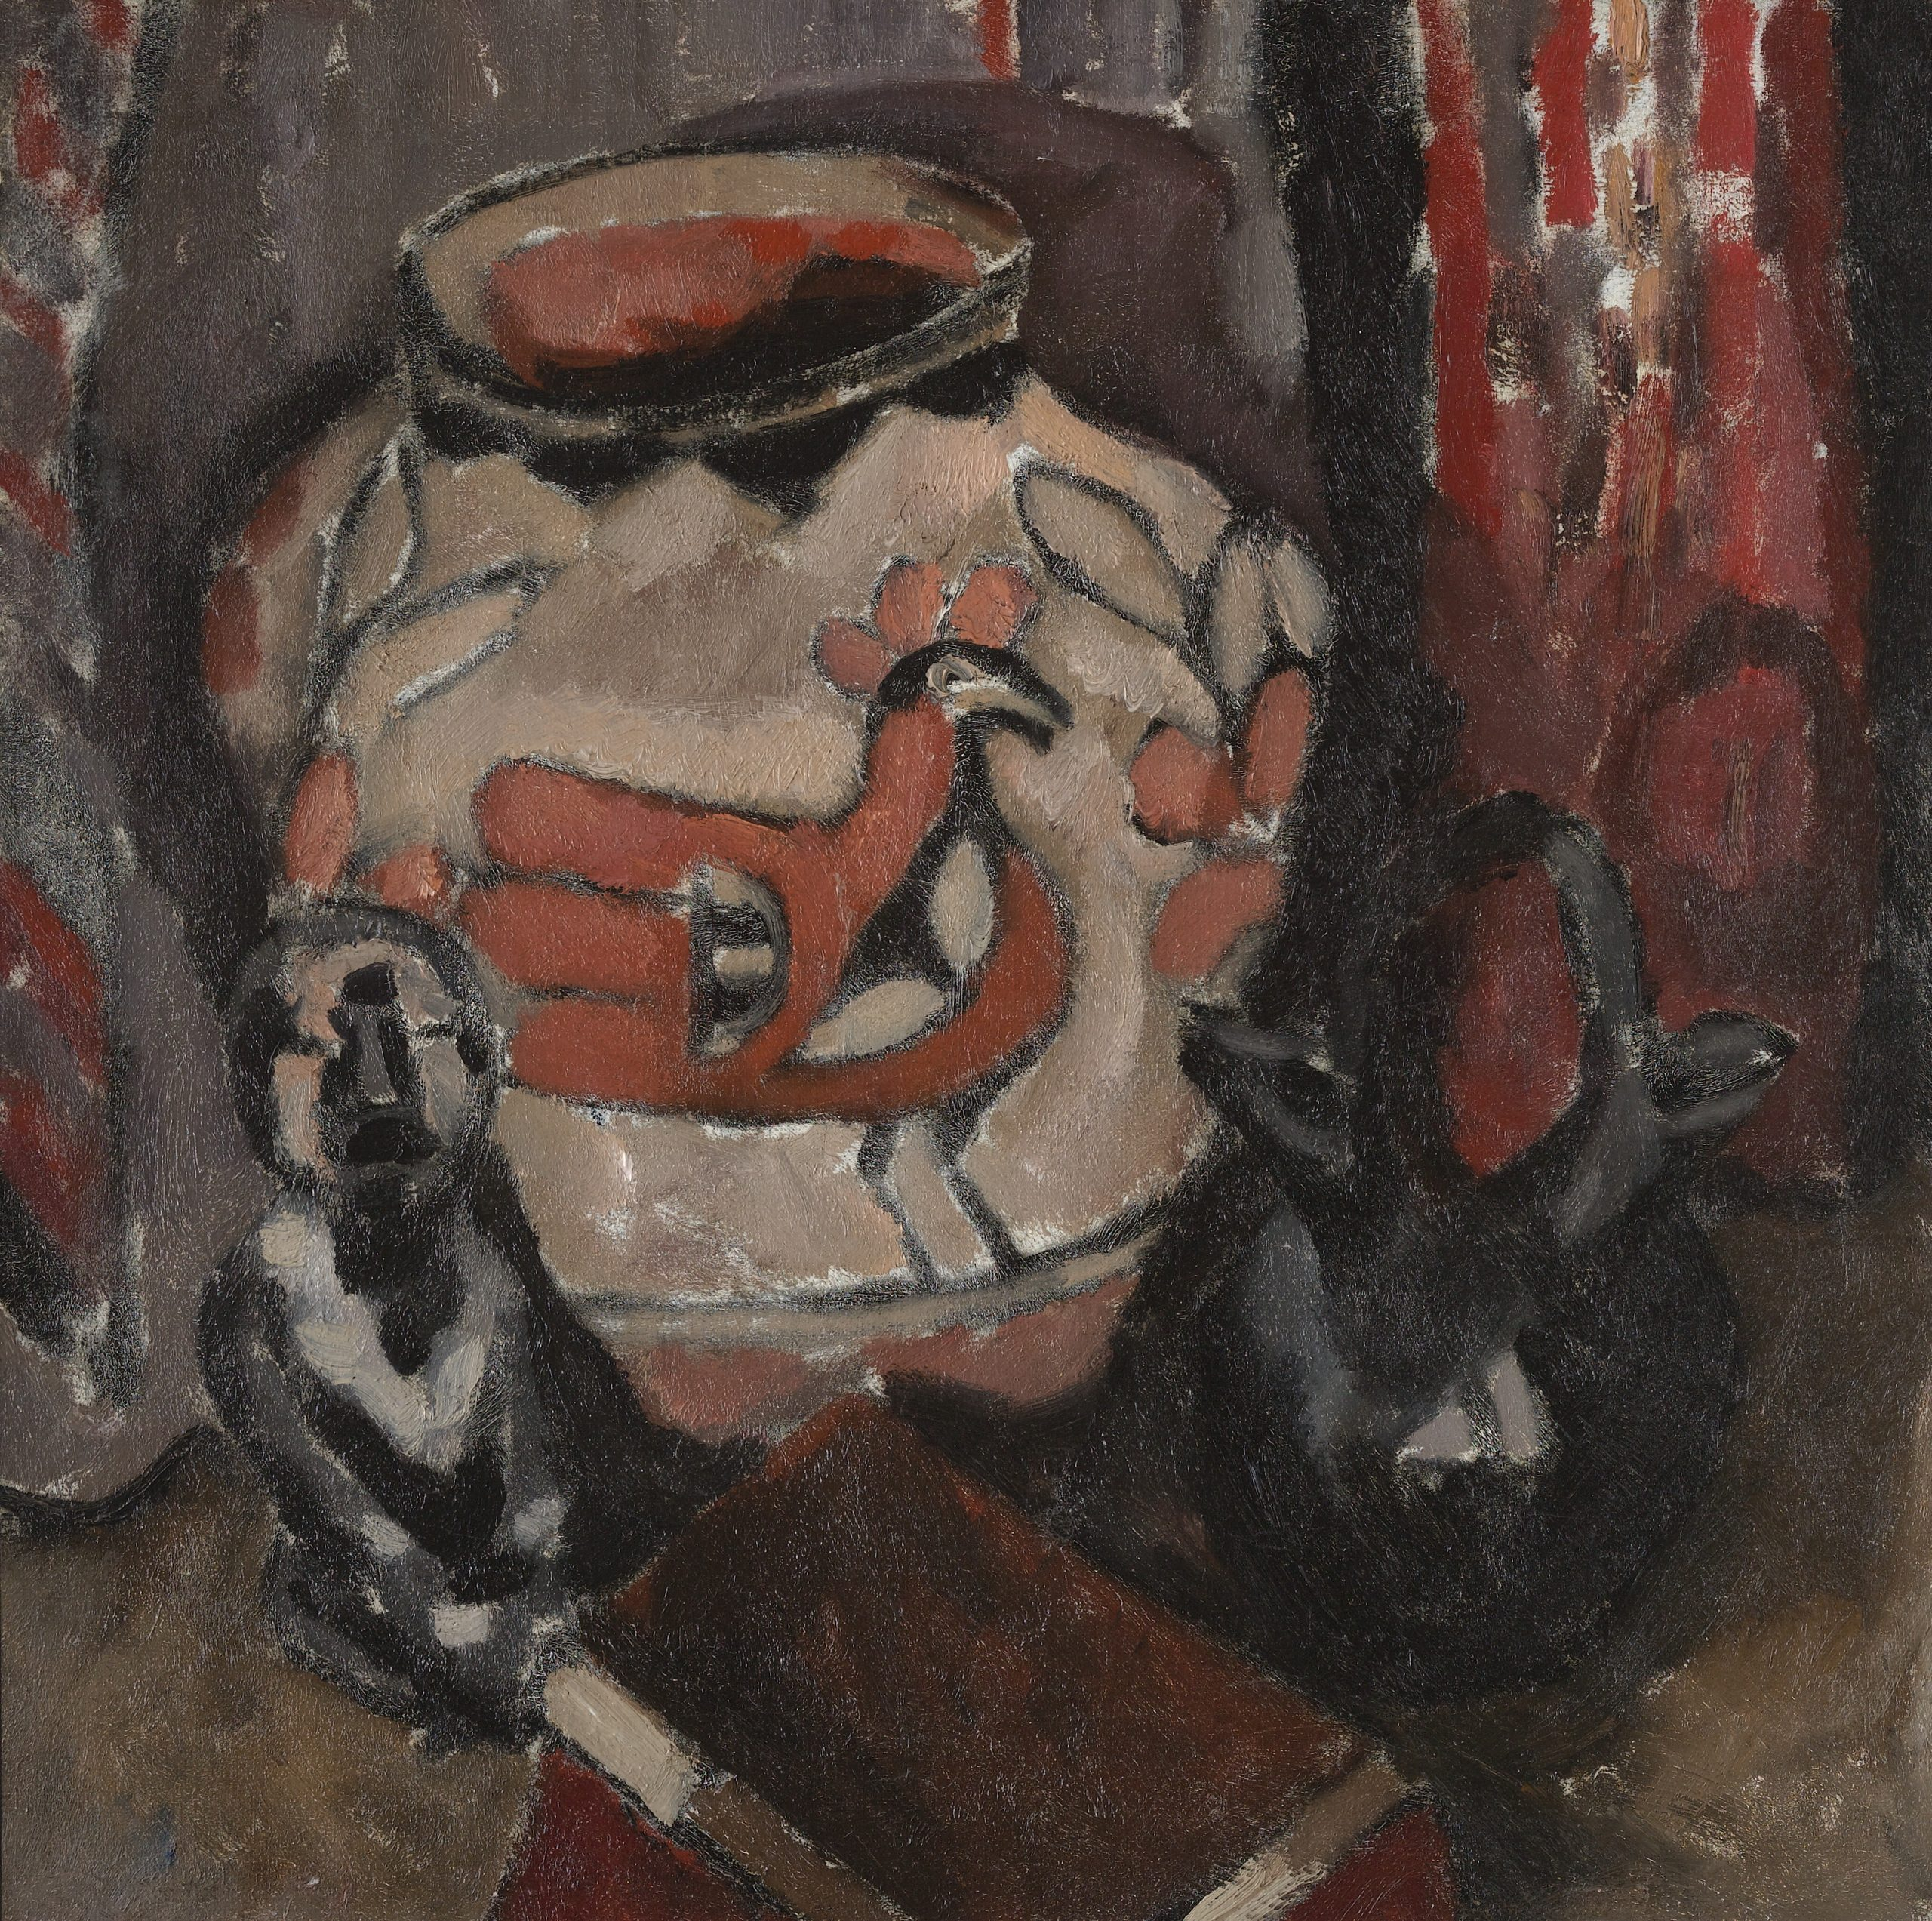 A still life painting featuring an Acoma pot decorated with a bird and leaf designs, a Santa Clara double-spouted jug, a small figure sculpture and a book on a table in front of a red tapestry.